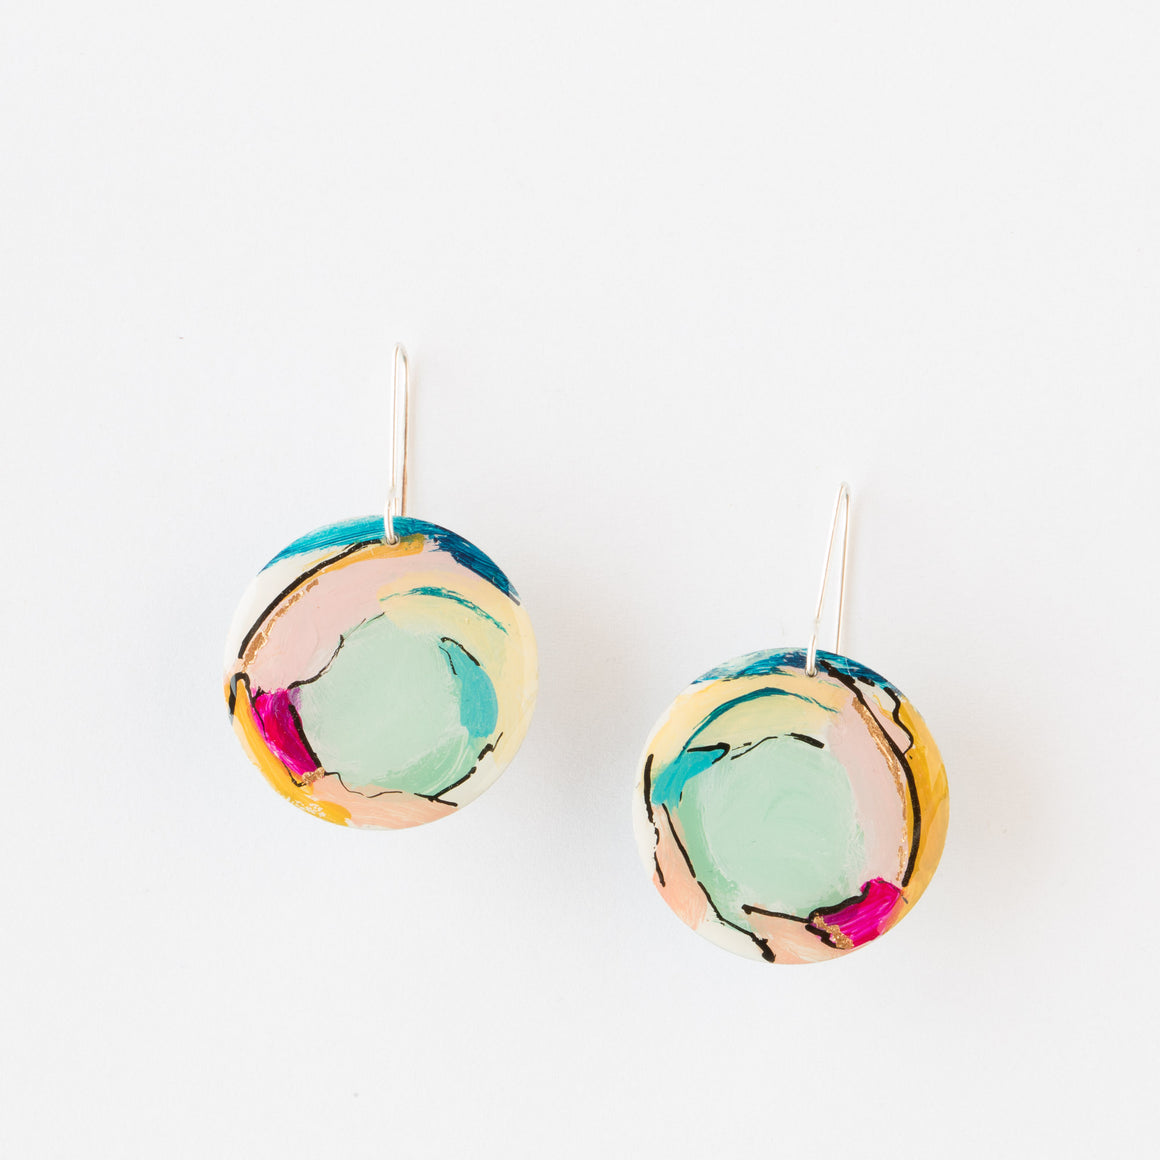 723 - Round Hand Painted Modern Earrings - Sold by Chic & Basta